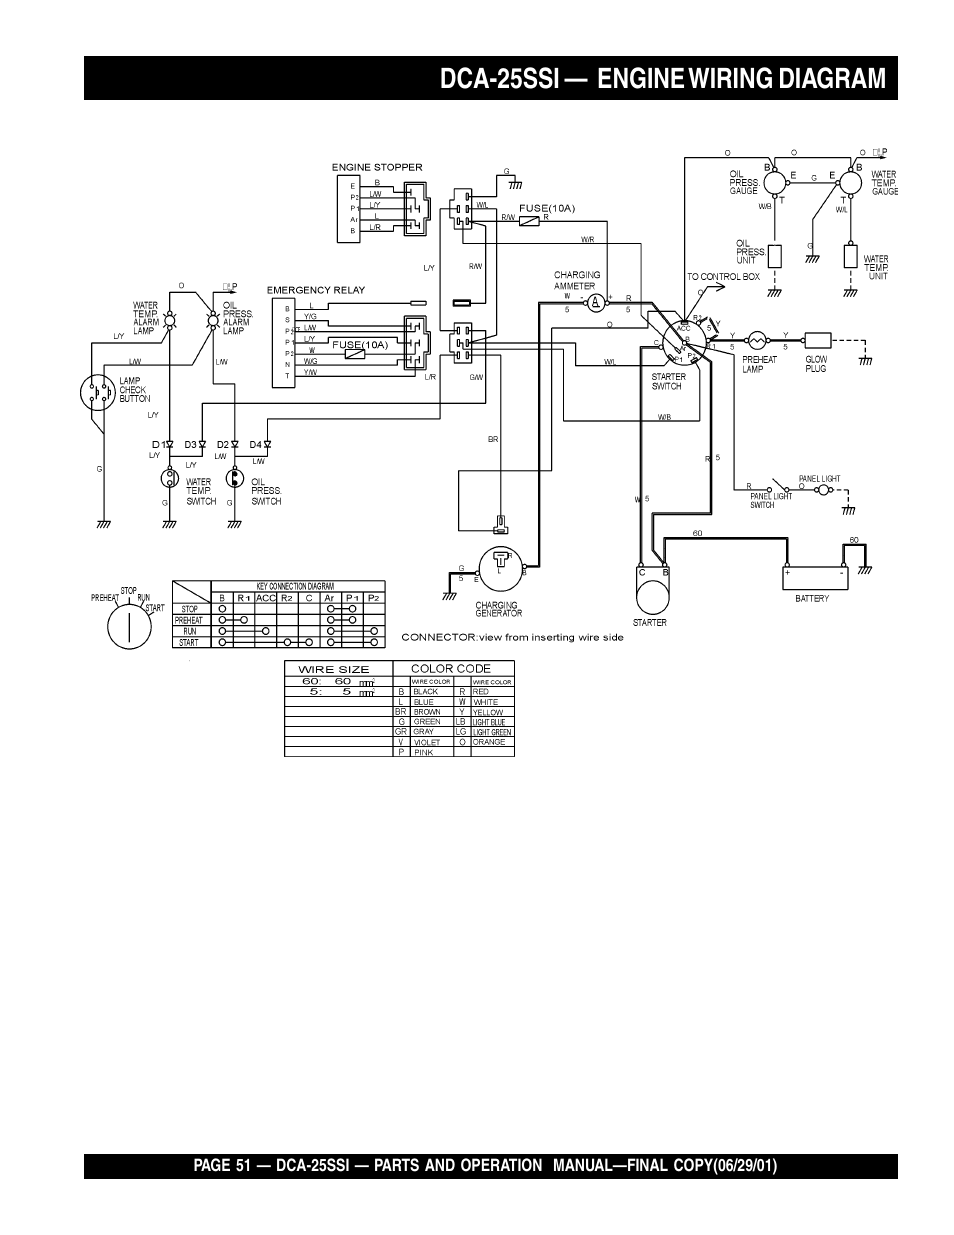 hight resolution of dca 25ssi engine wiring diagram multiquip mq power whisperwatt generator dca 25ssi user manual page 51 140